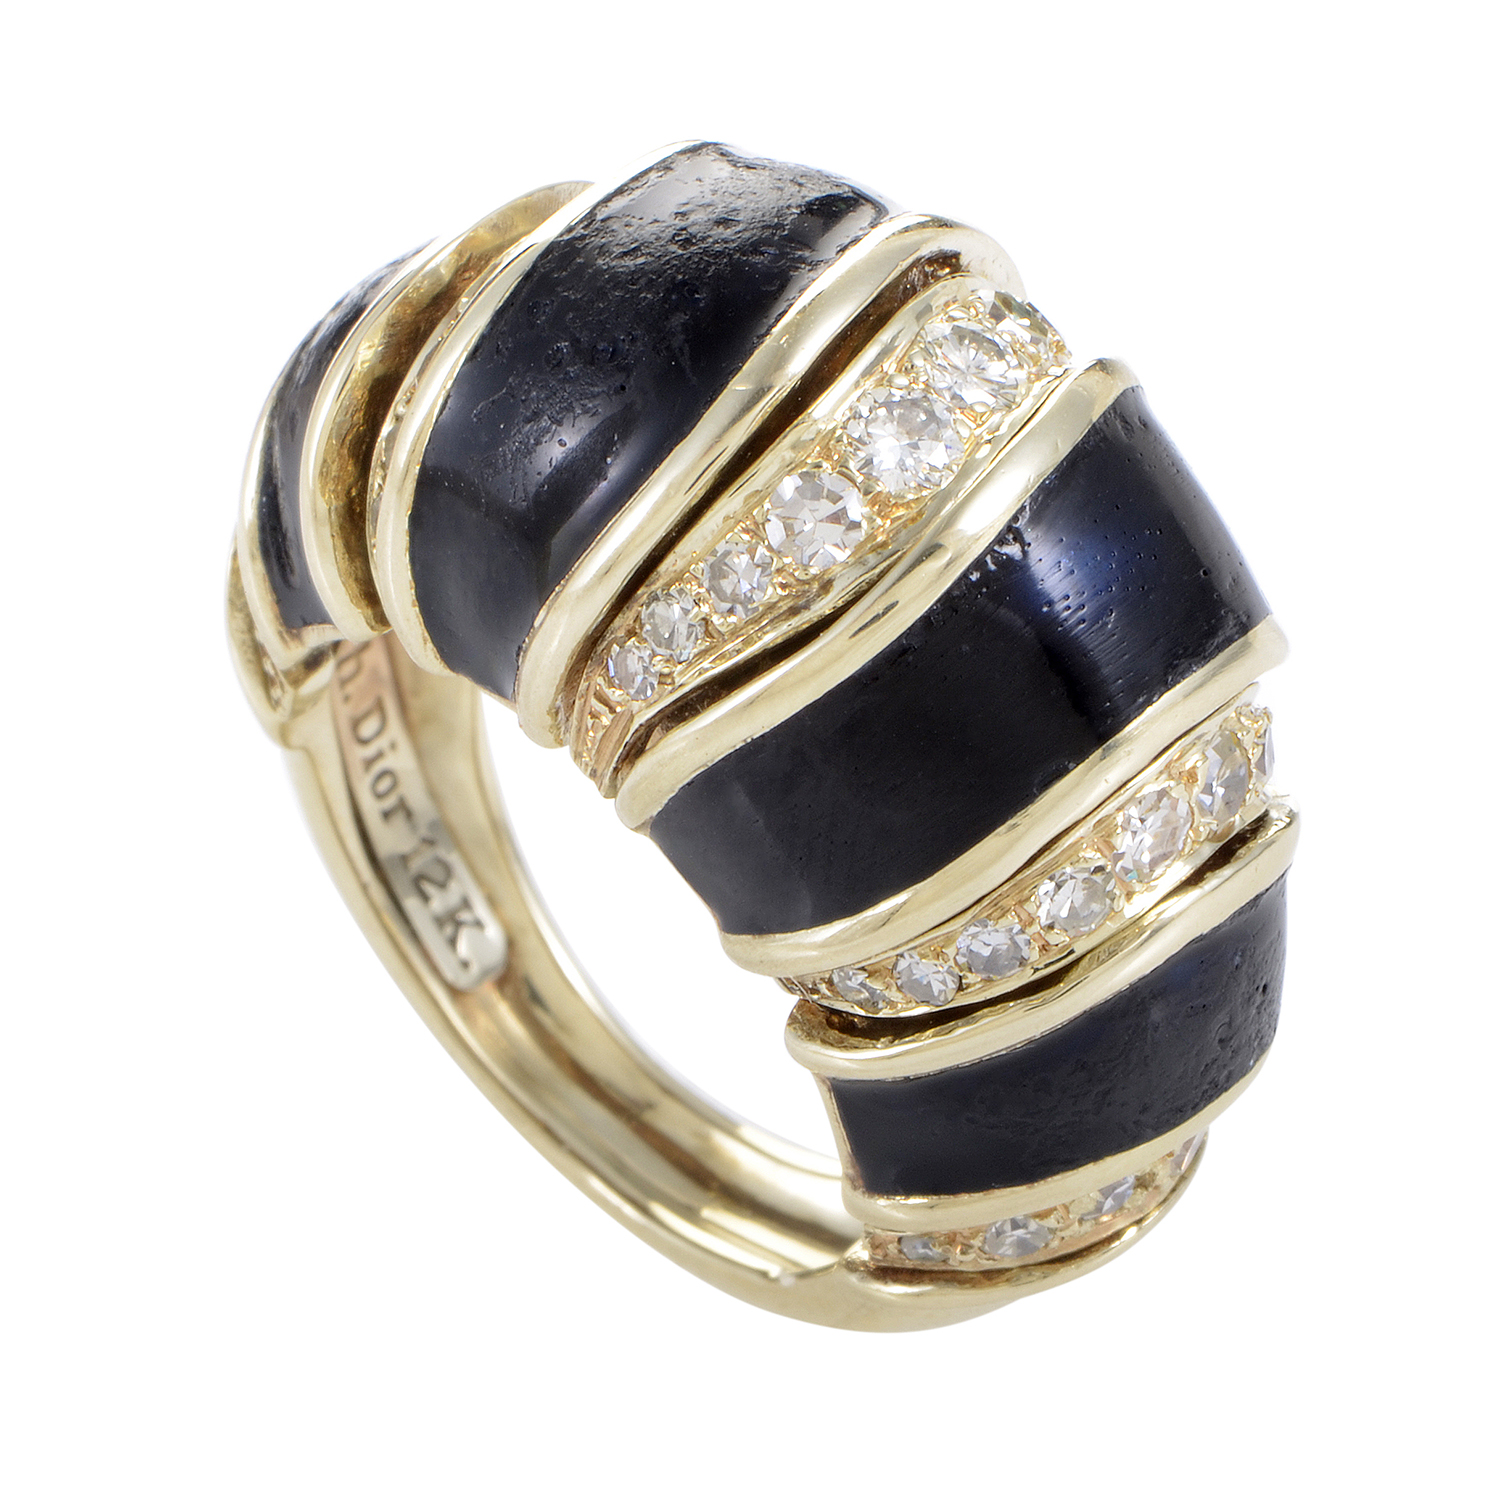 Dior Women's Black Enameled 12K Yellow Gold Diamond Bombe Ring